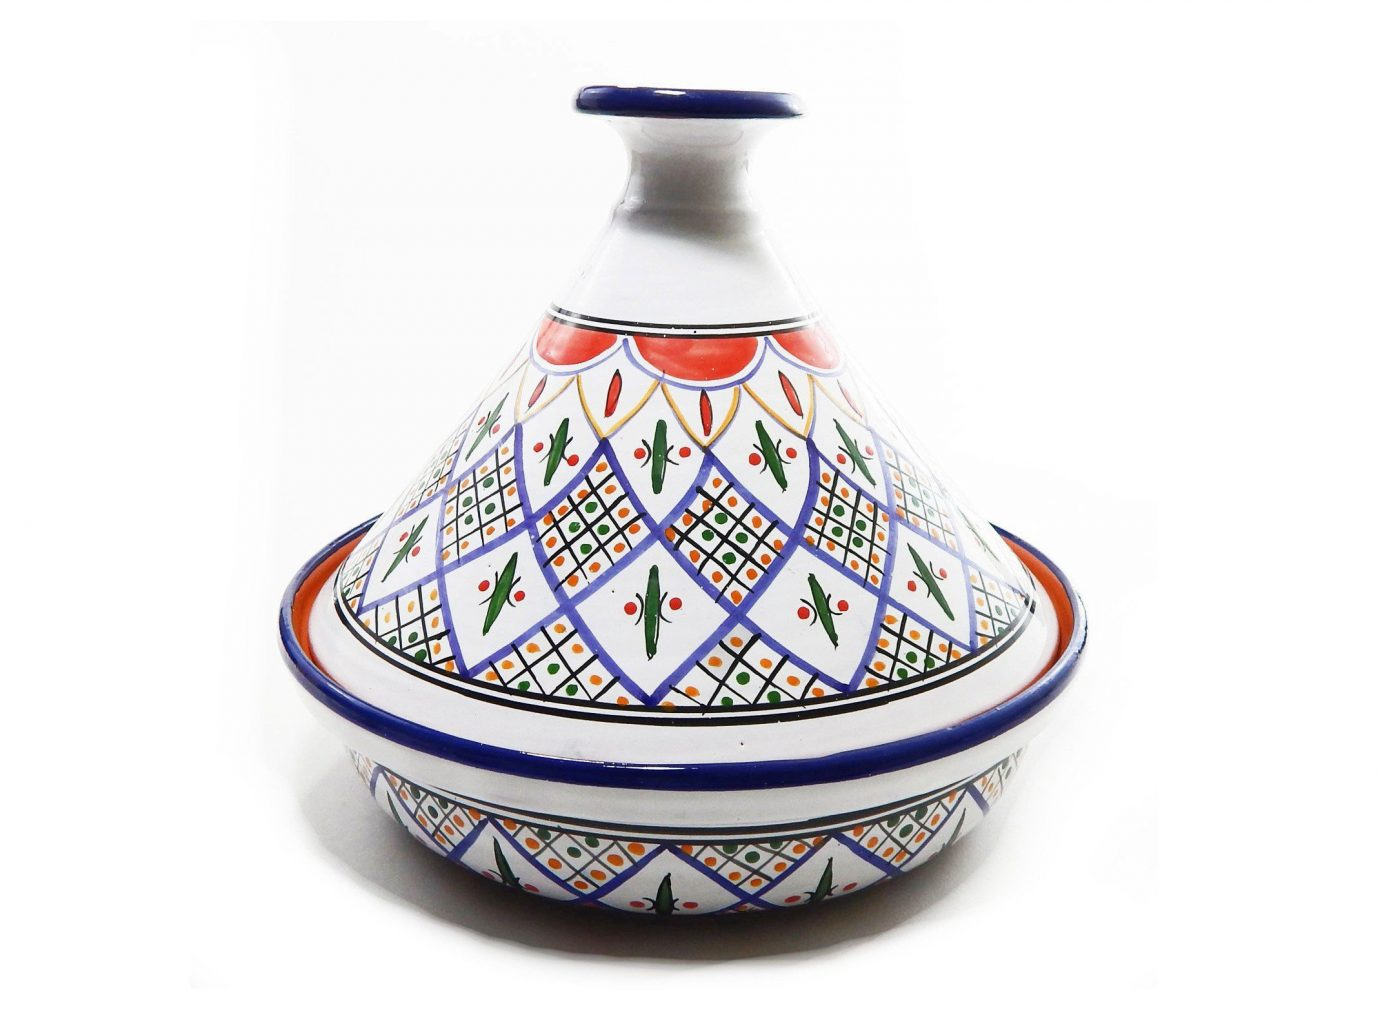 Gift Guides Travel Shop Travel Tech ceramic product tableware colorful vase pottery product design ceramic ware painted colored